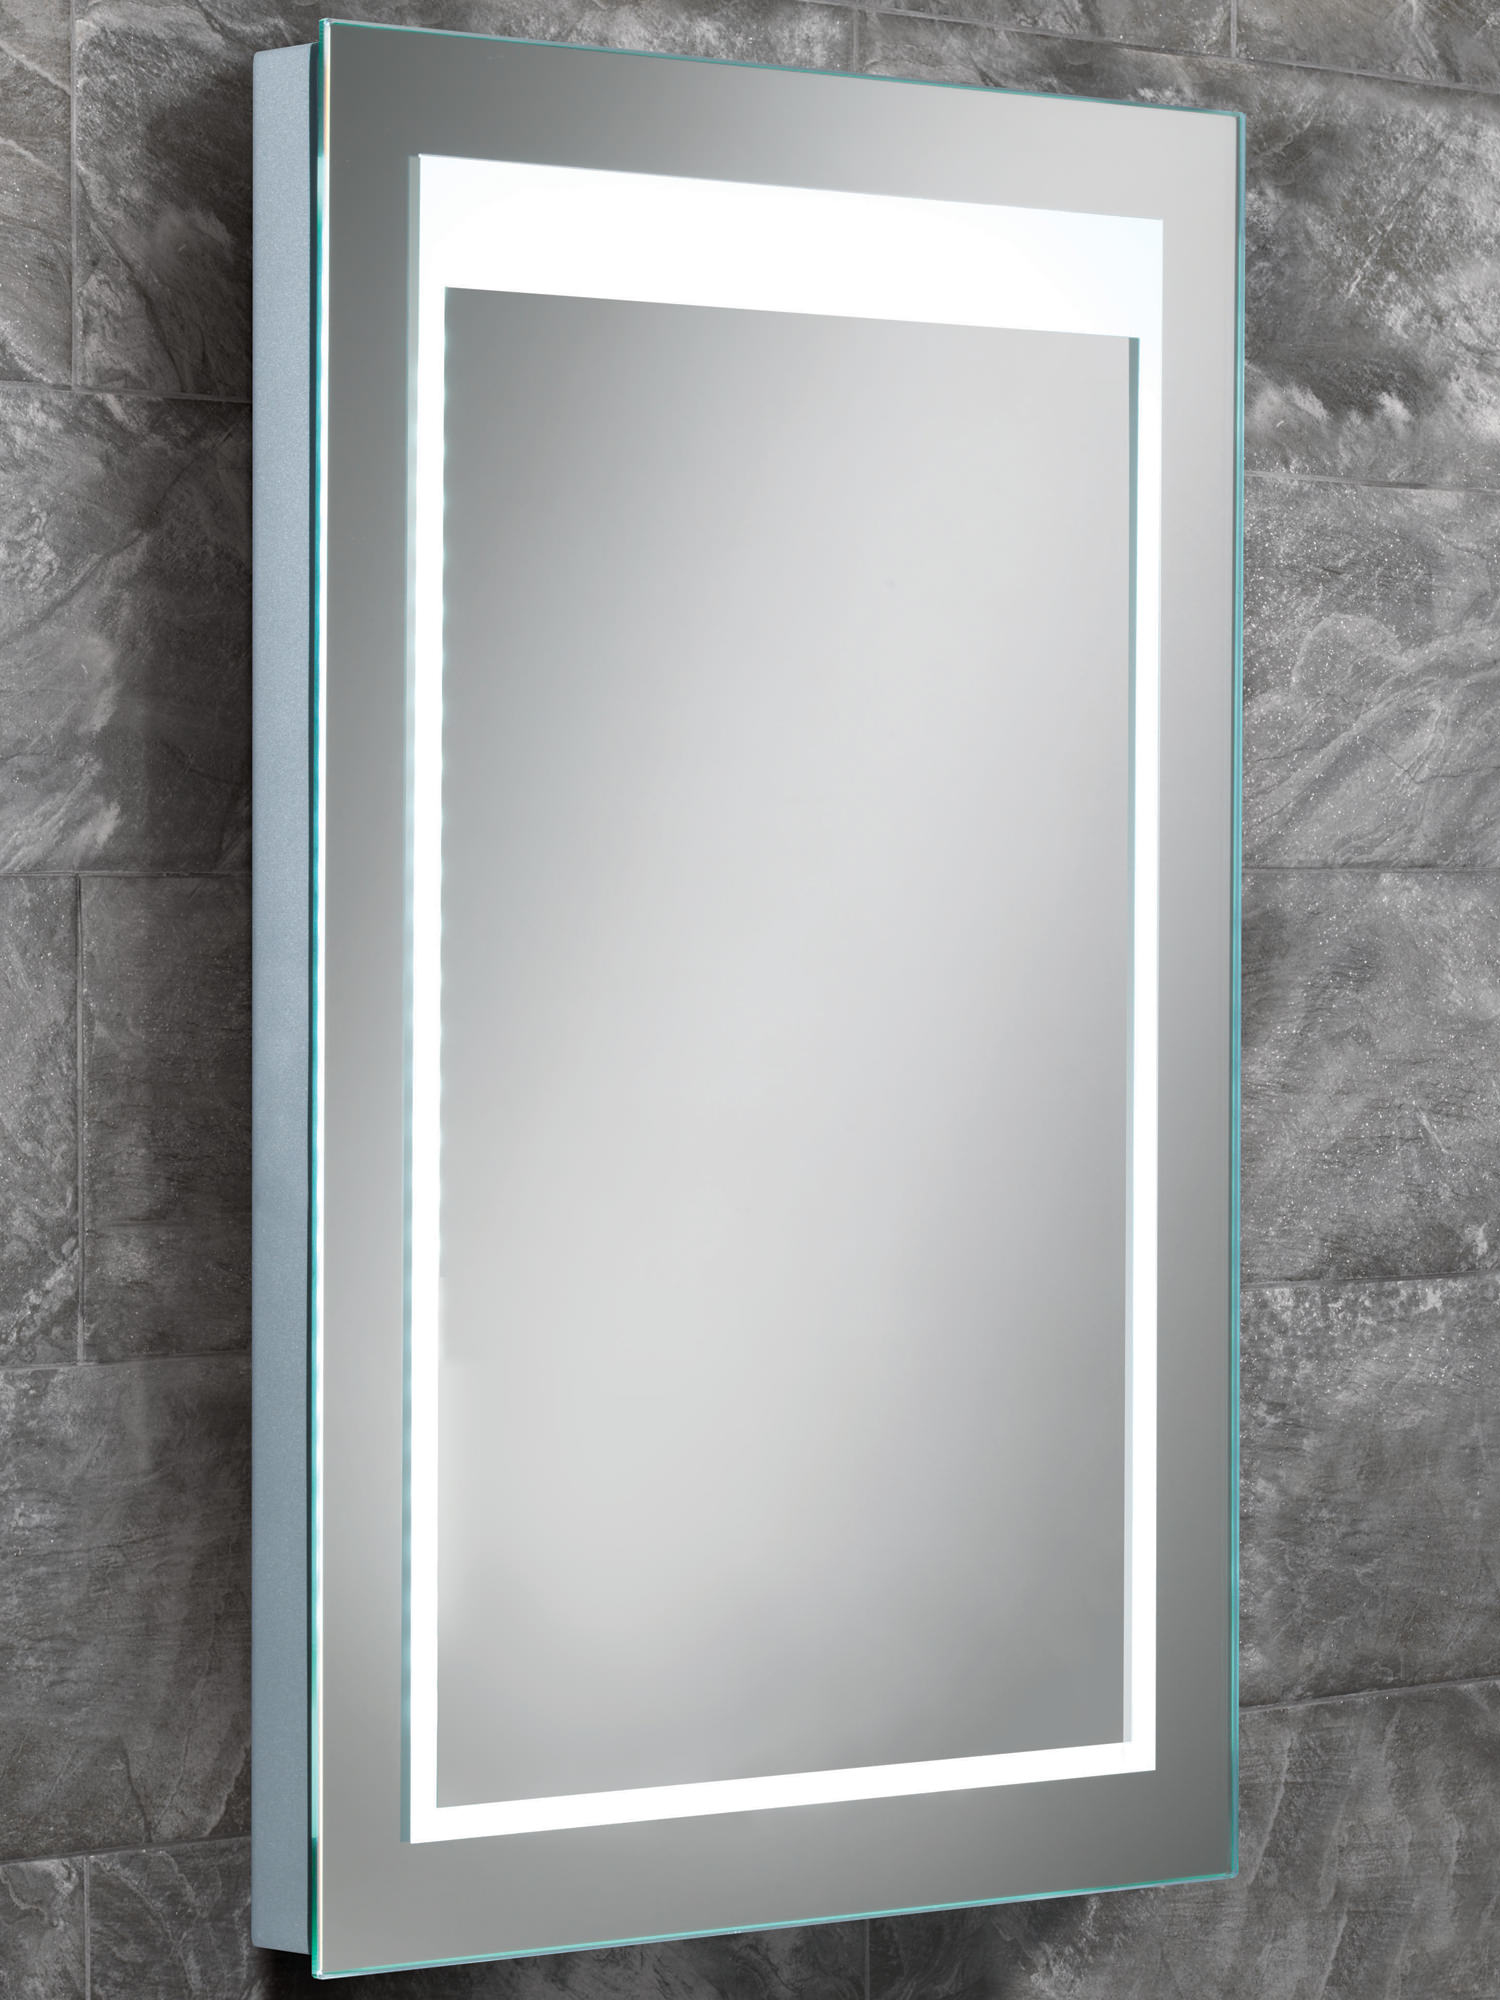 hib liberty steam free led back lit bathroom mirror 400 x 16250